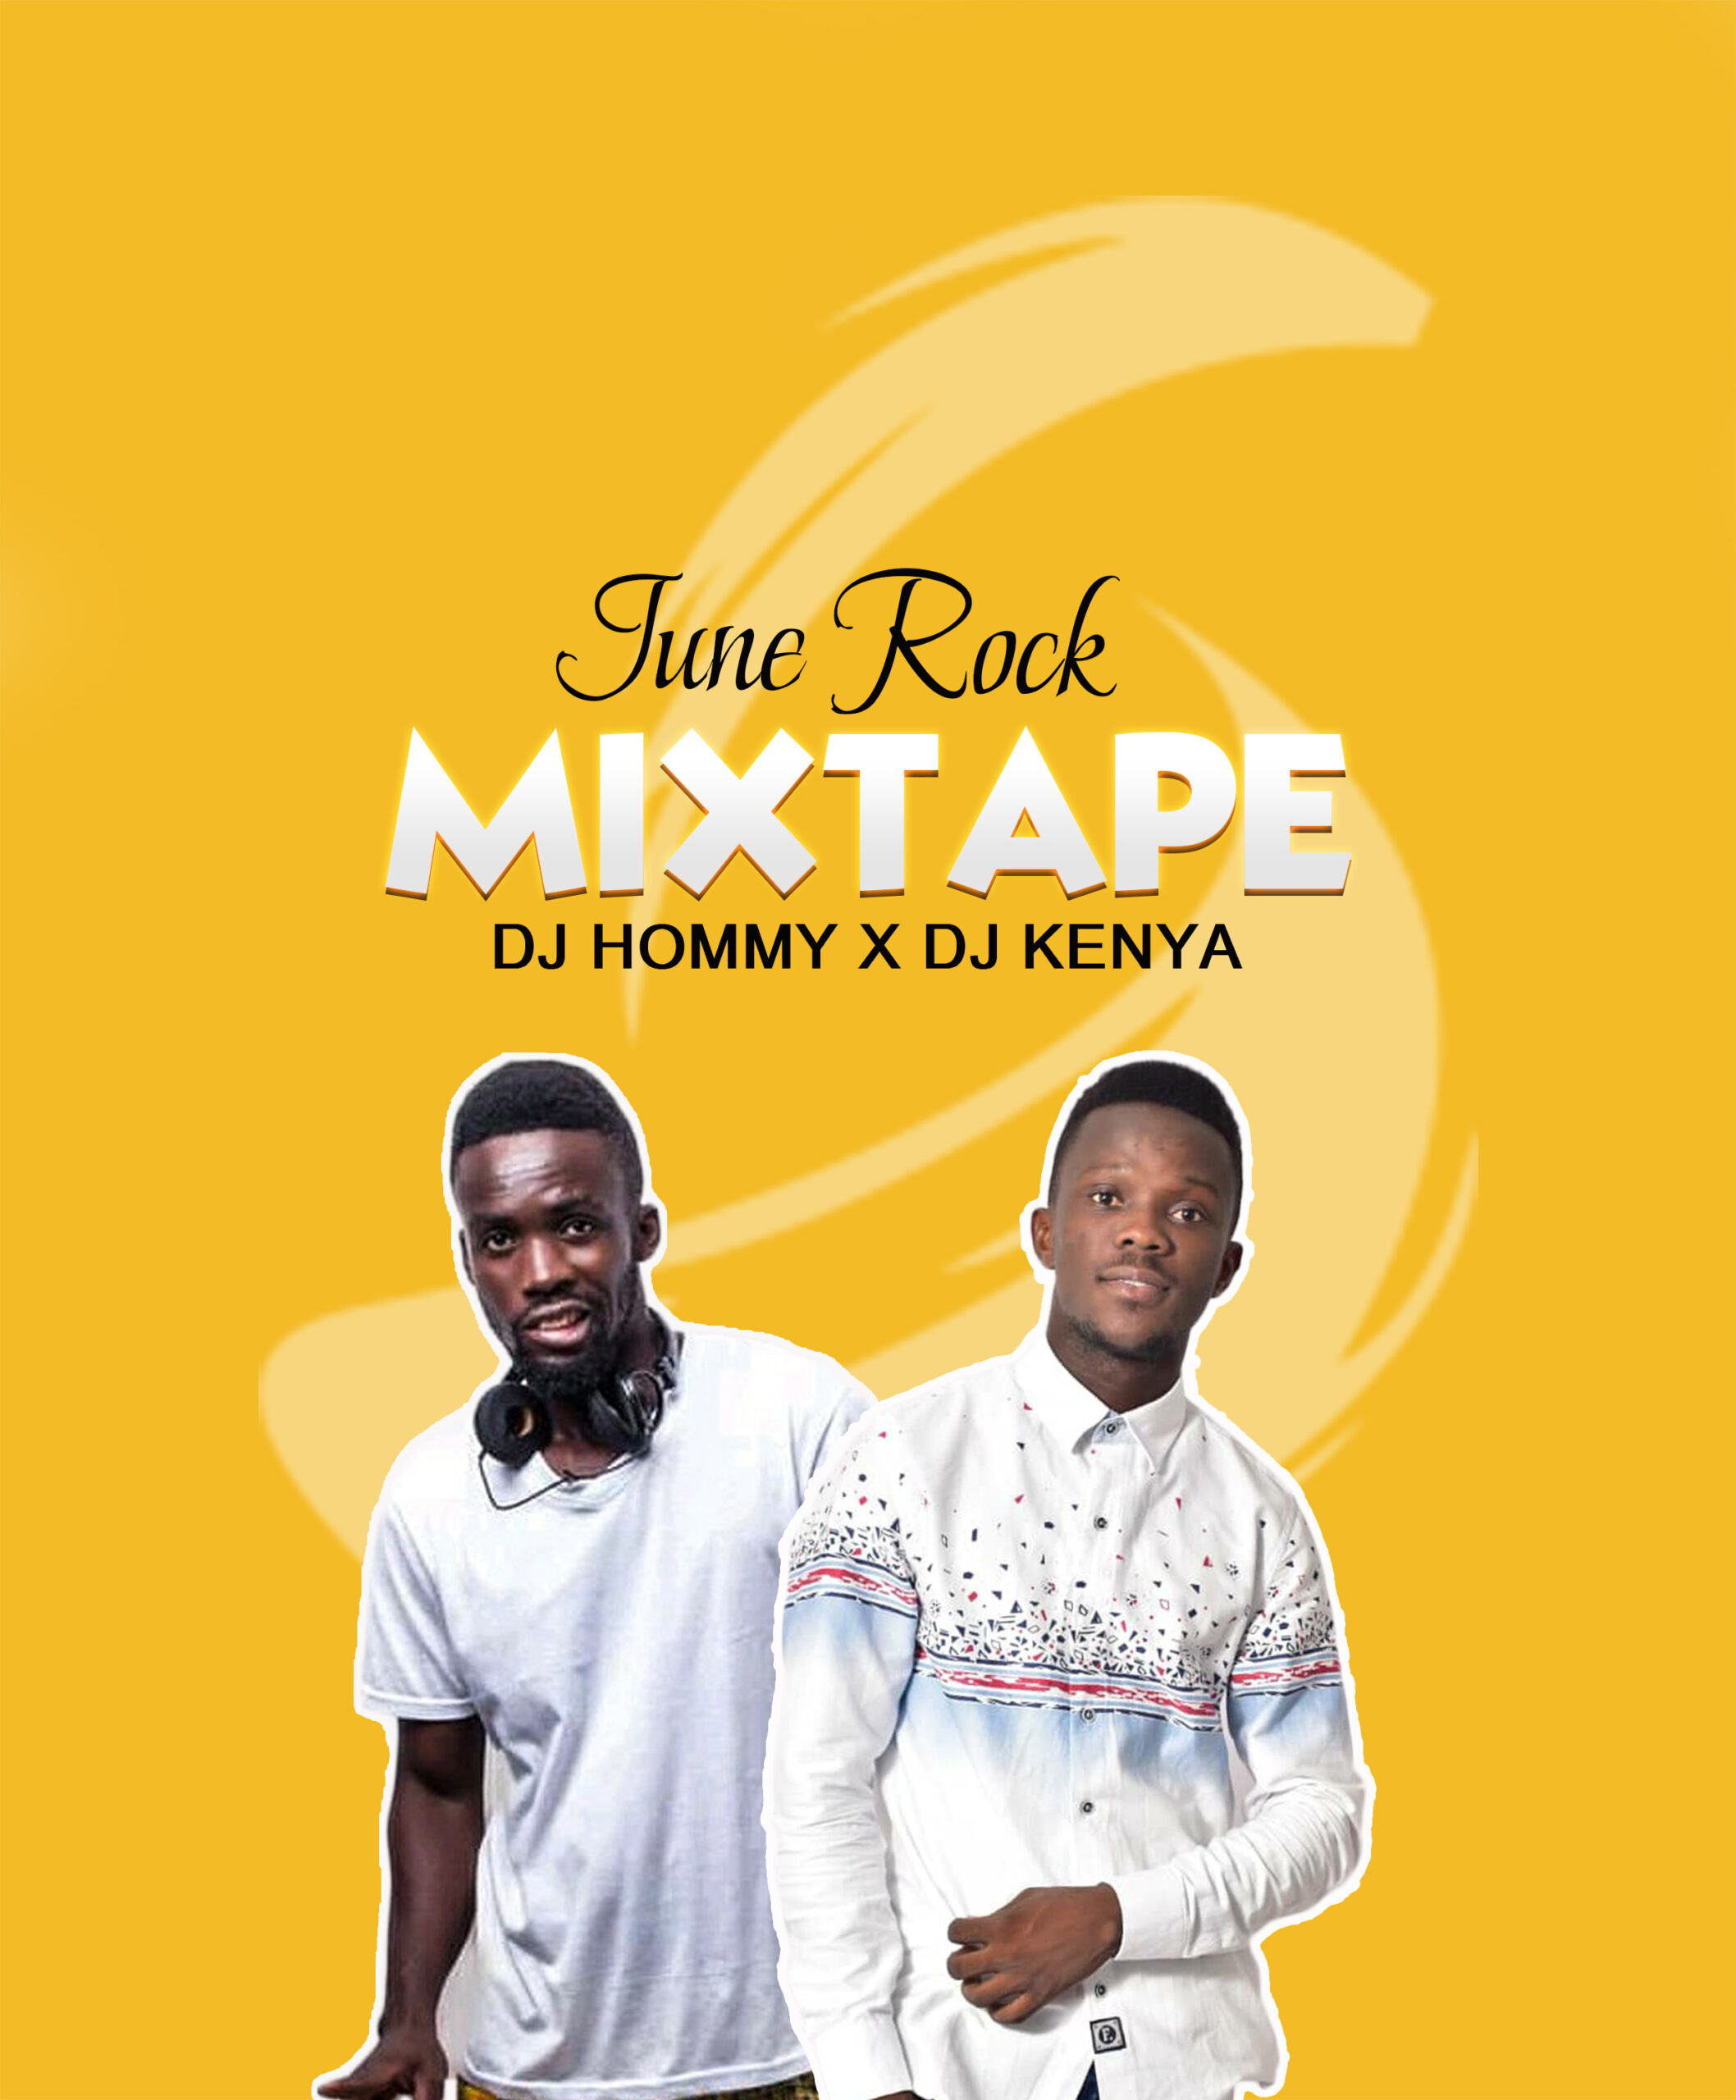 June Rock Mixtape – DJ Hommy x DJ Kenya